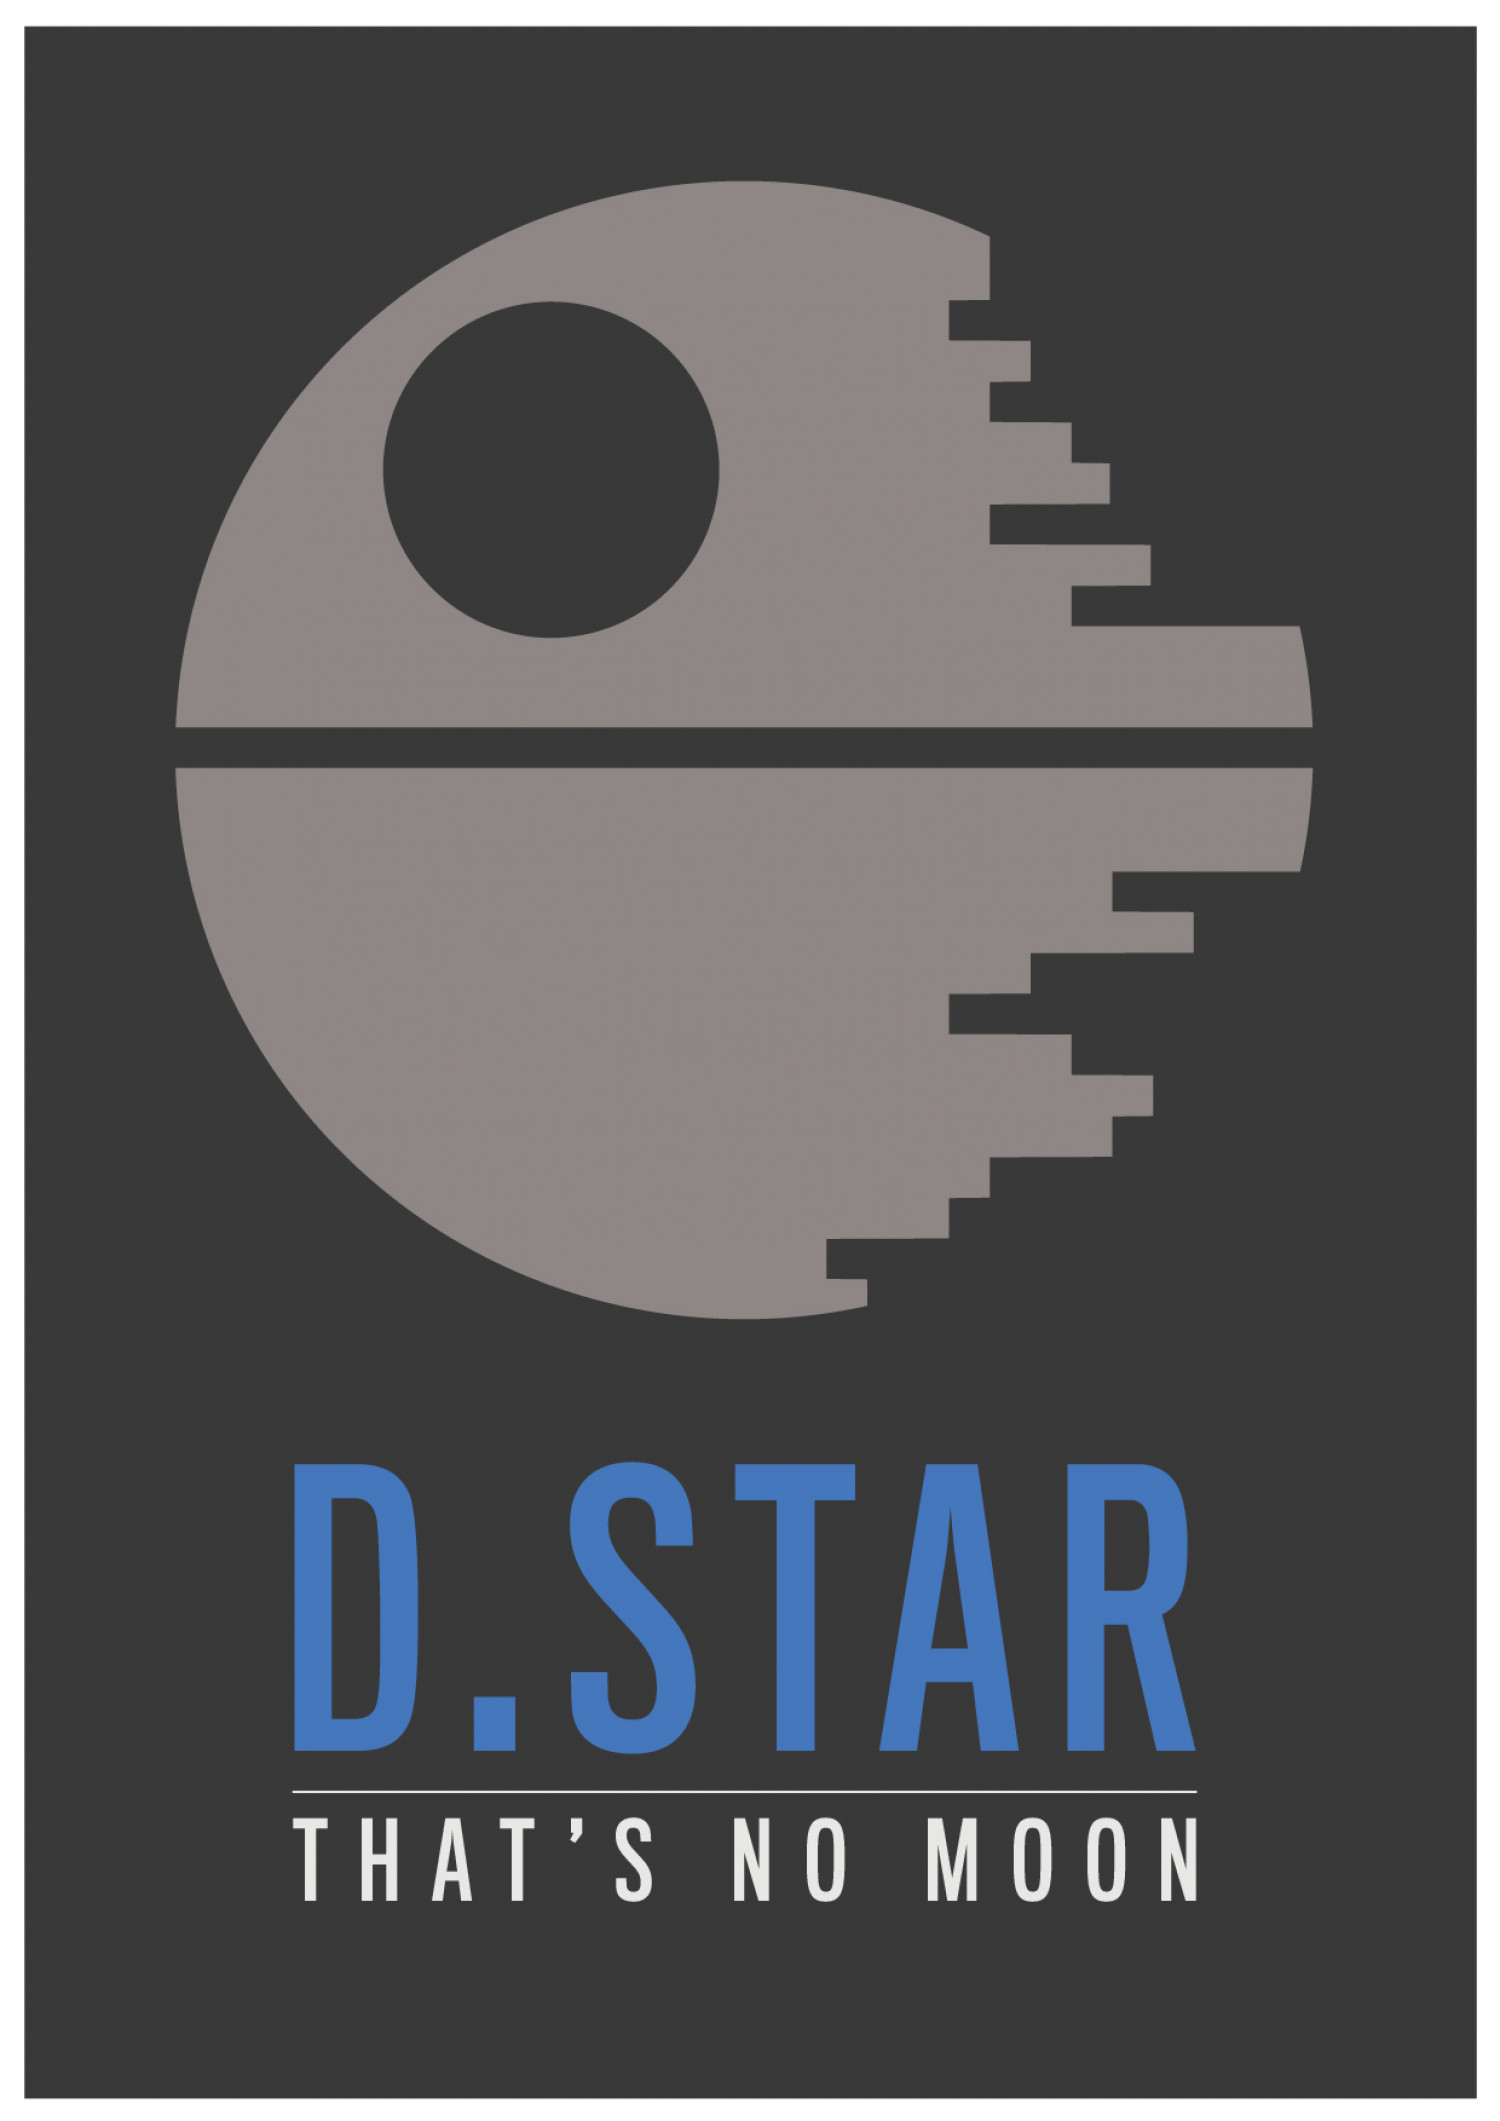 Star Wars Death Star 'That's no Moon!' Infographic